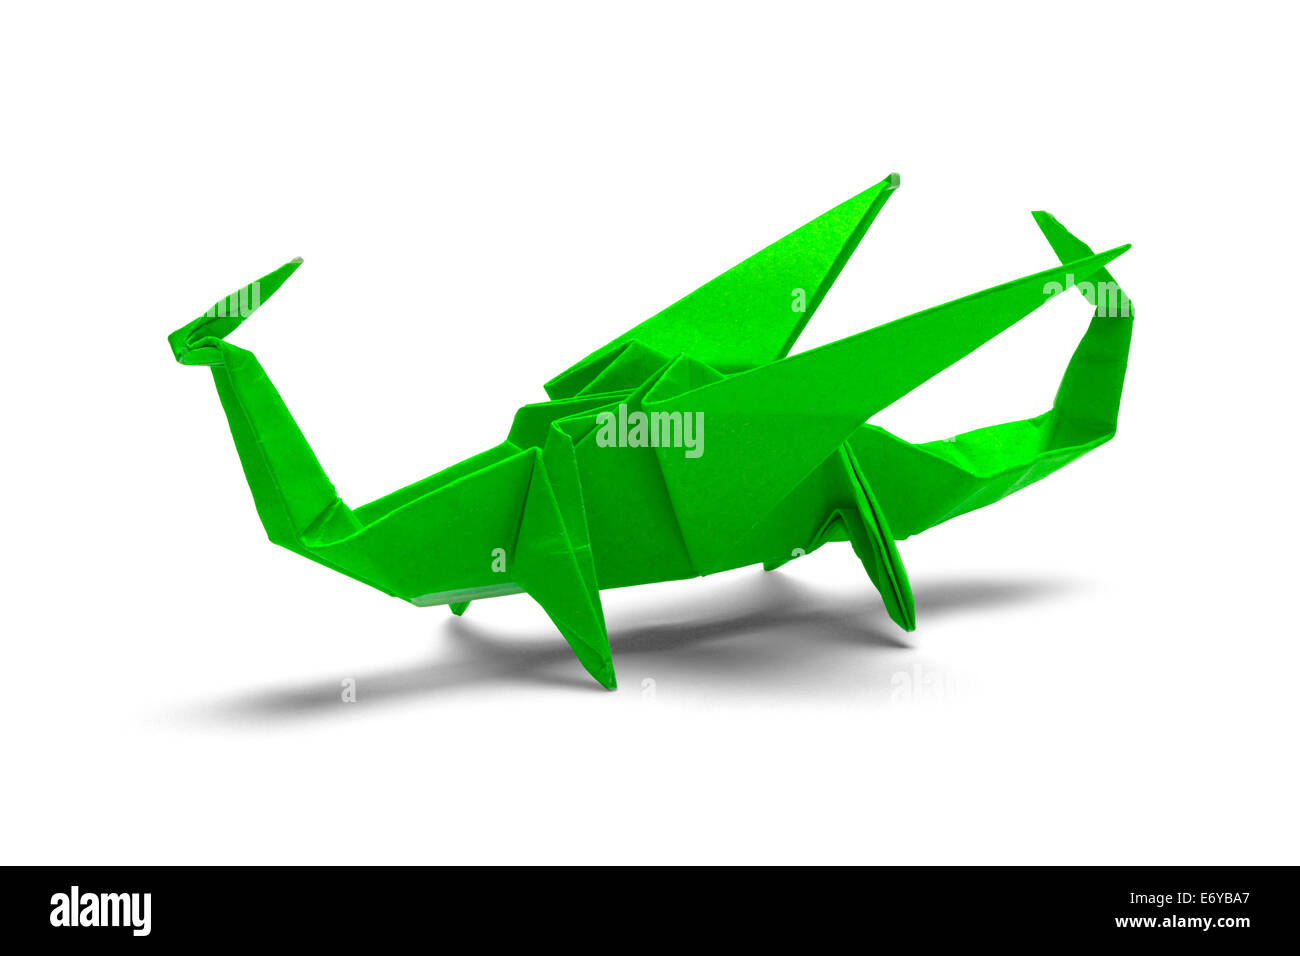 Green Paper Origami Dragon Isolated on White Background. - Stock Image